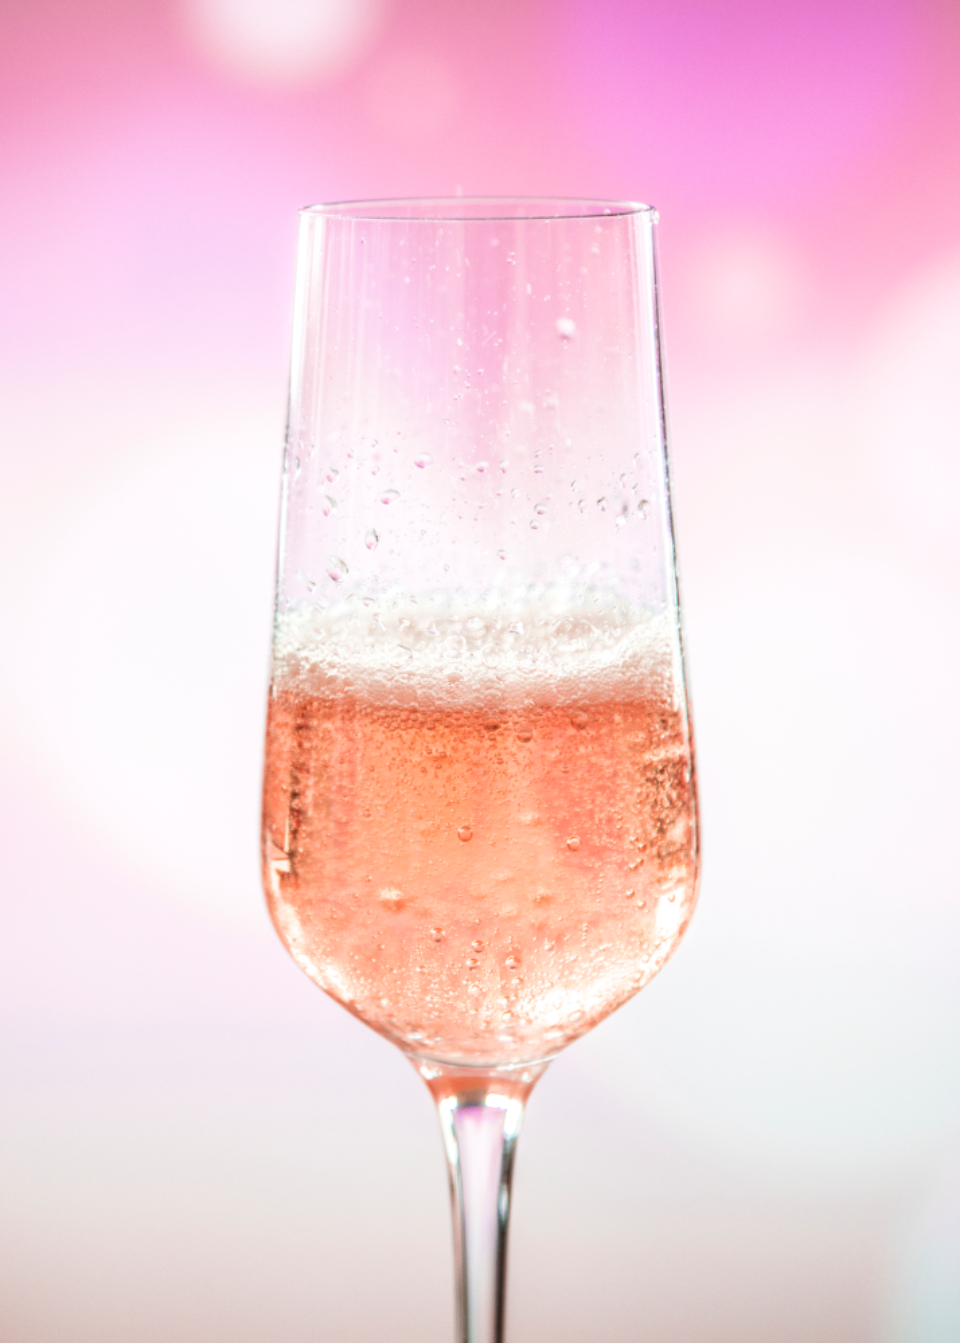 alcohol anniversary beverage bright bubble celebrate celebration champagne close up cocktail cold drink dining dinner drink drinking event festival festive glass liquid luxury macro nobody party pink prosecco refreshing refreshment romance ro